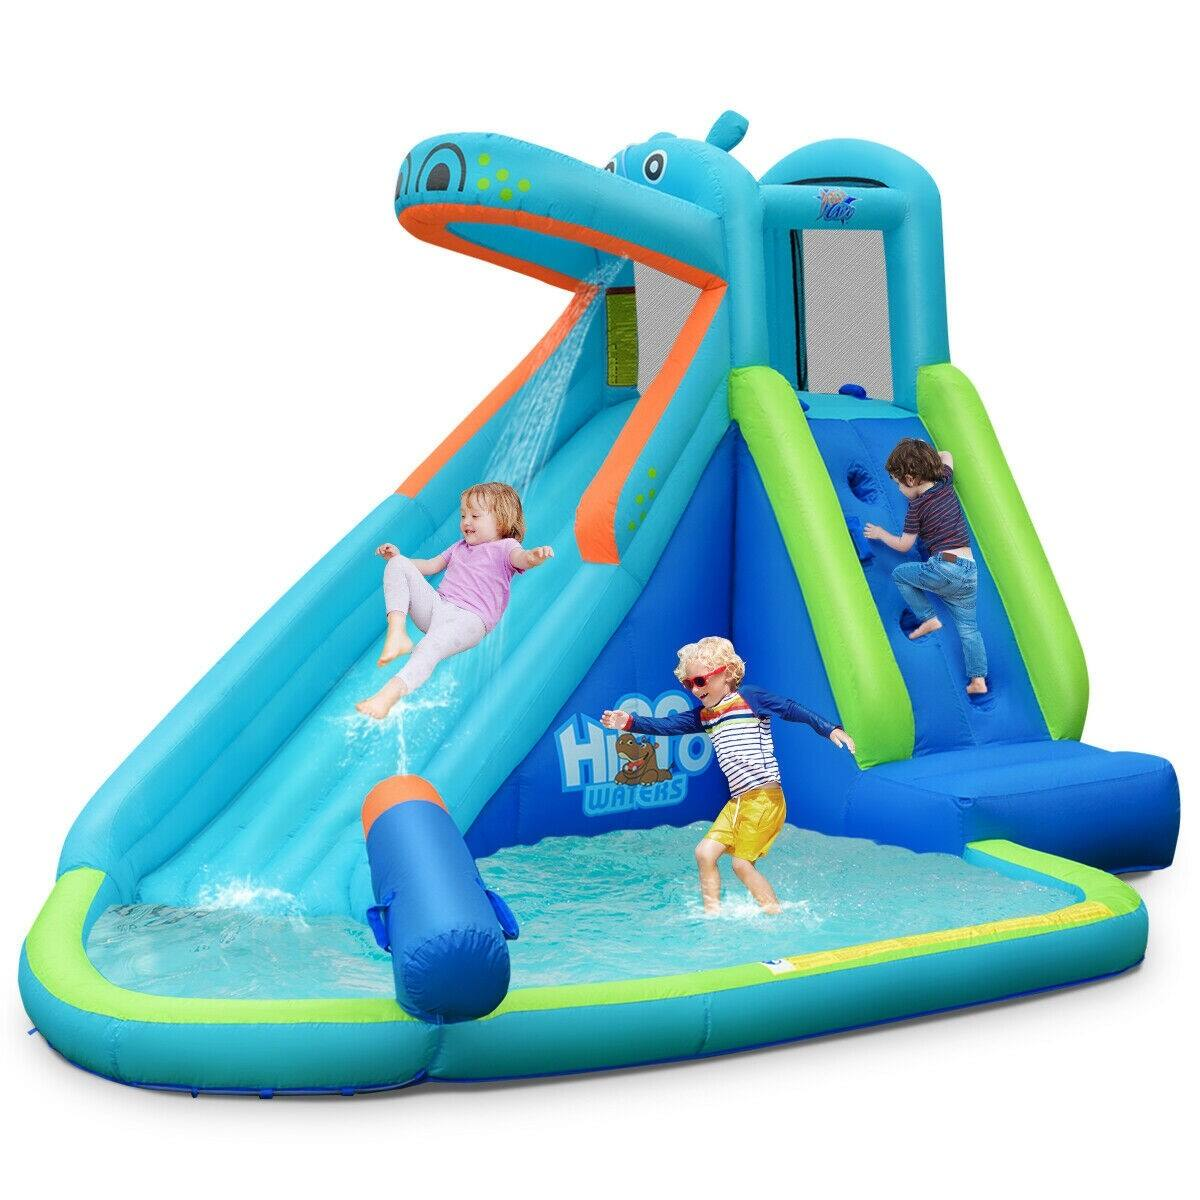 Costway Kids Hippo Inflatable Bounce House with Bag $206.95 + FS